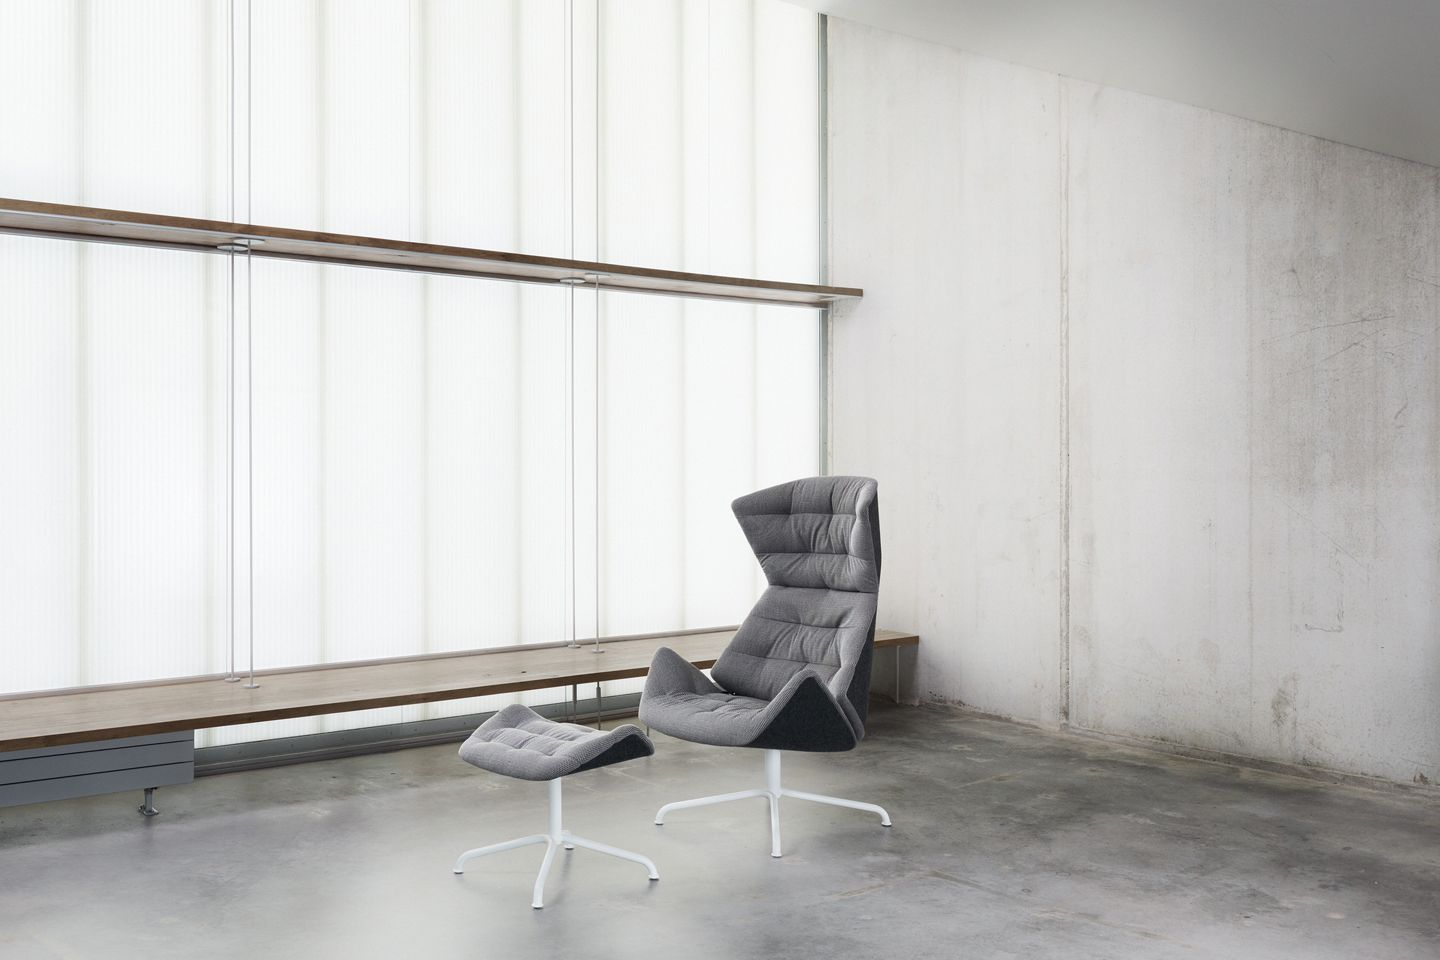 Lounge Sessel Thonet Thonet Lounge Sessel 808 Grey Design Formstelle